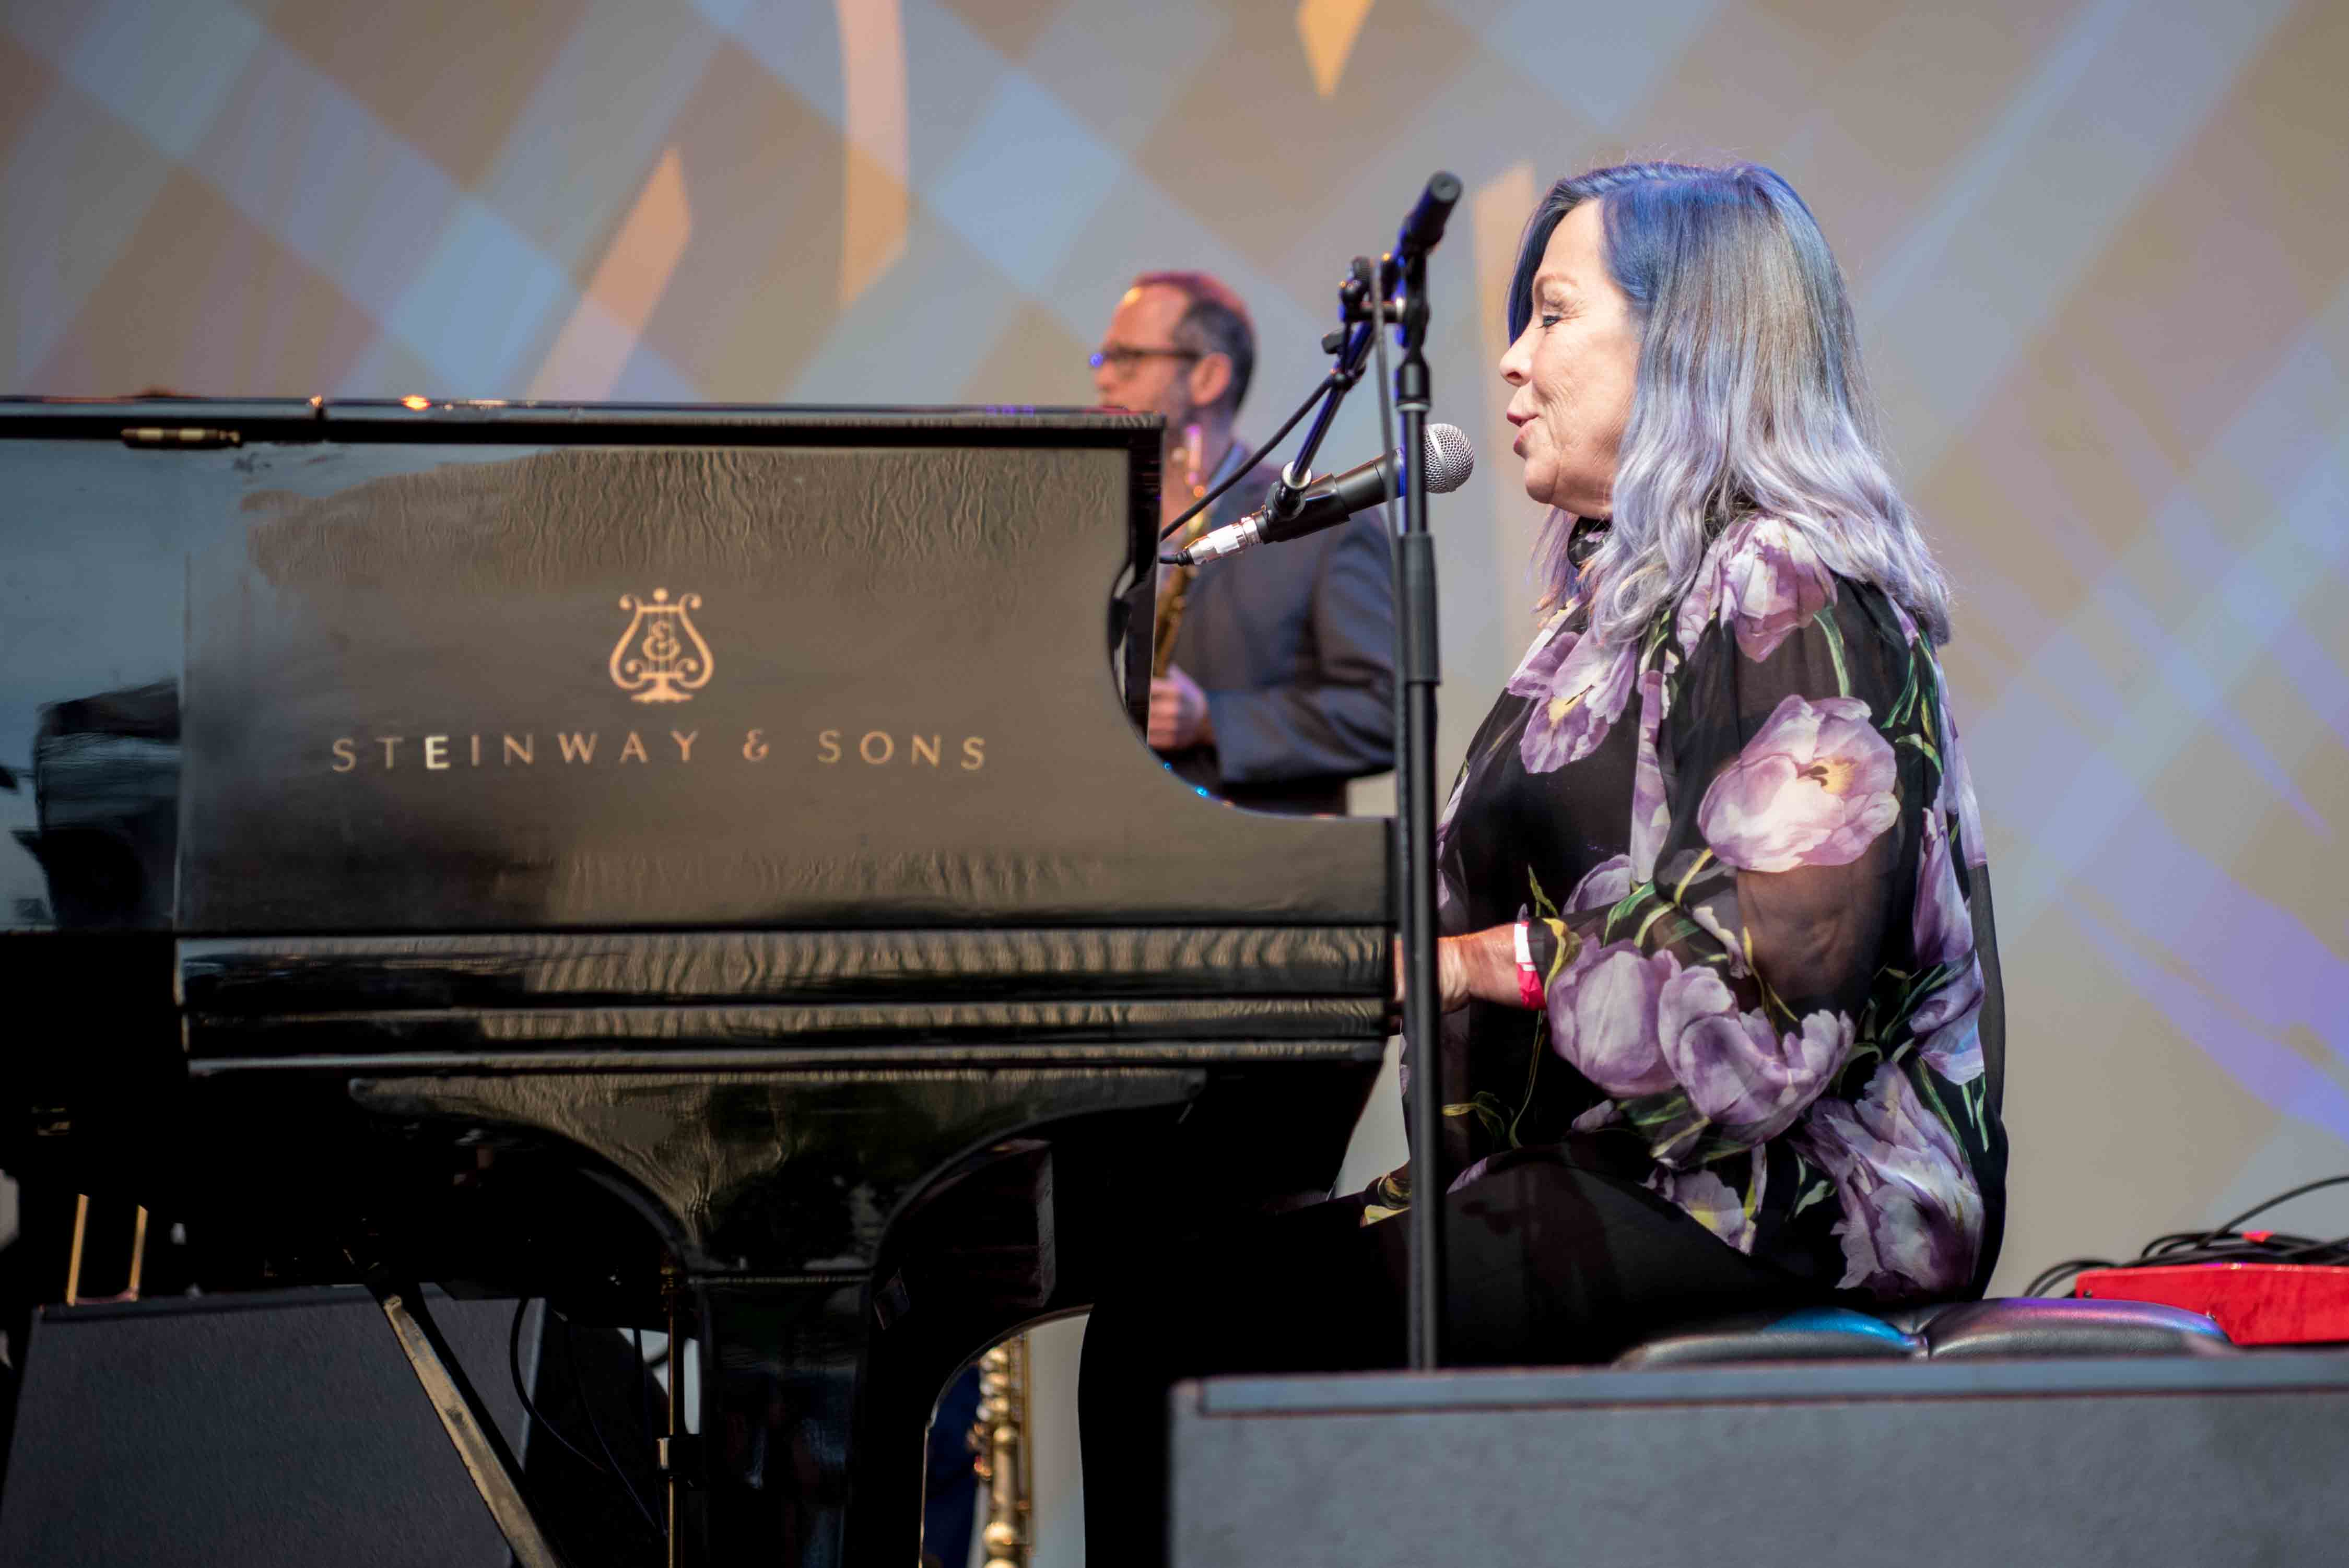 """Rickie Lee Jones at NPR's """"Turning The Tables"""" @ Damrosch Park 7/26/17. Photo by Vivian Wang (@Lithophyte) for www.BlurredCulture.com."""